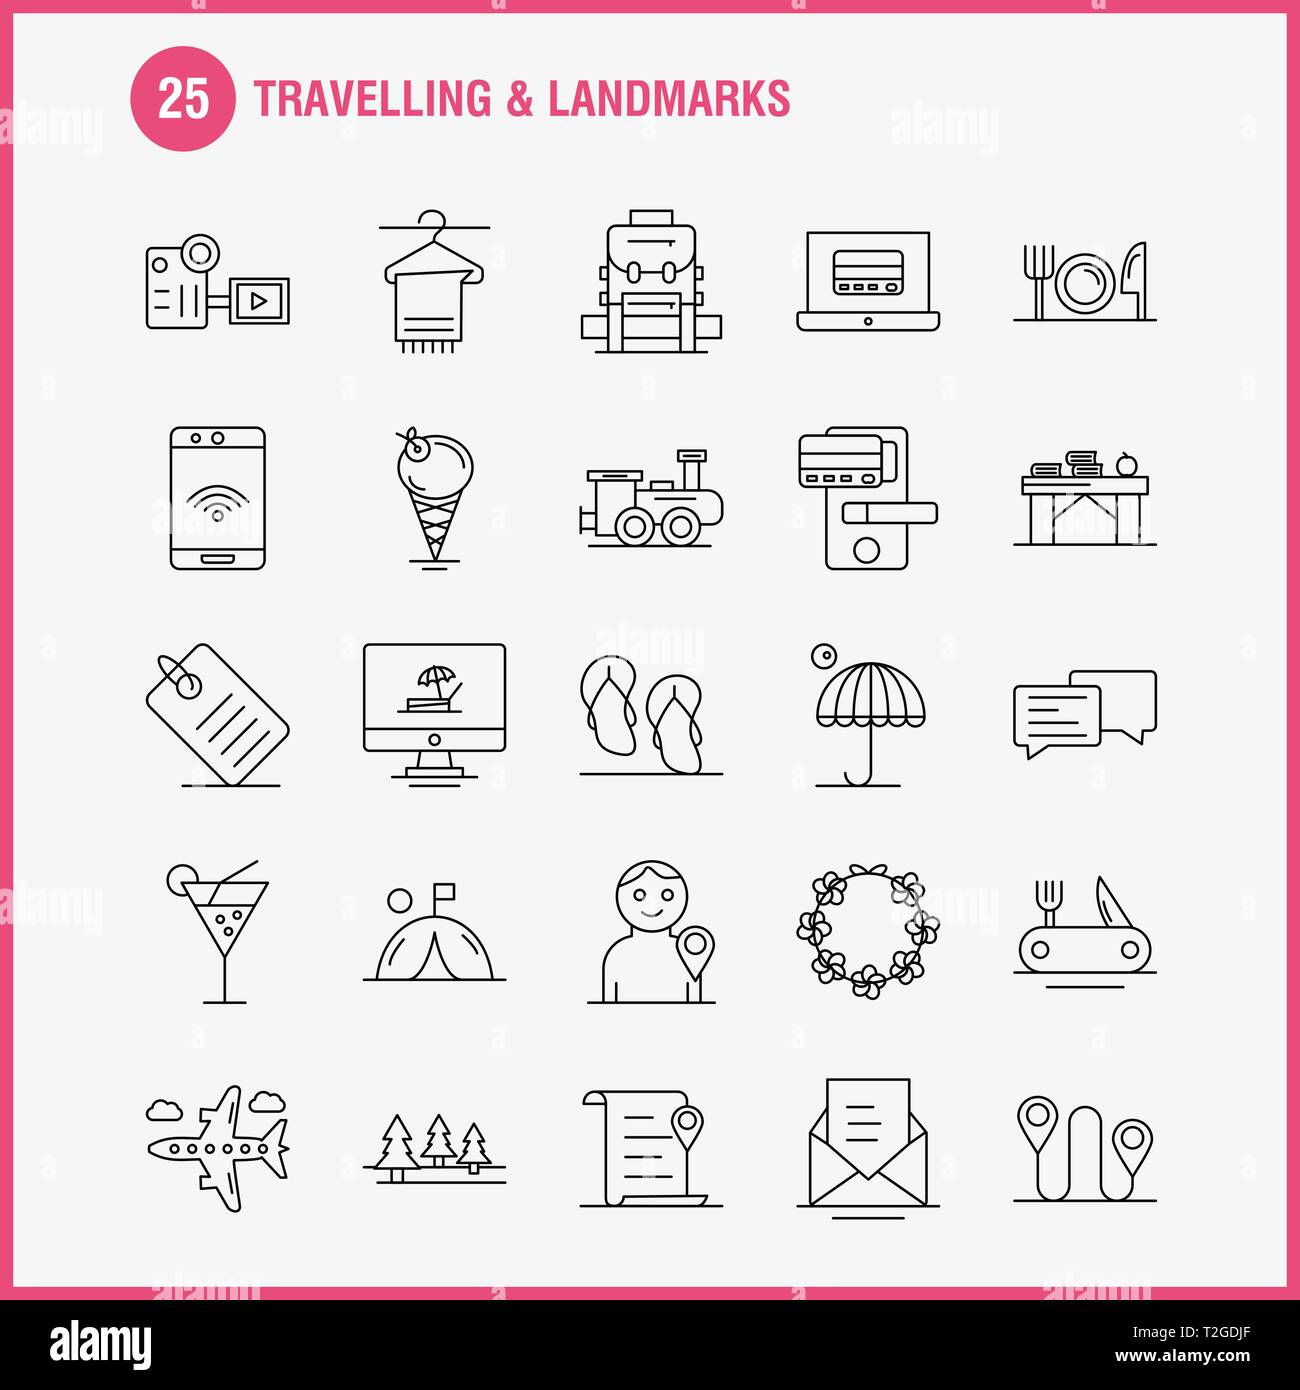 Travelling And Landmarks Line Icon for Web, Print and Mobile ... on